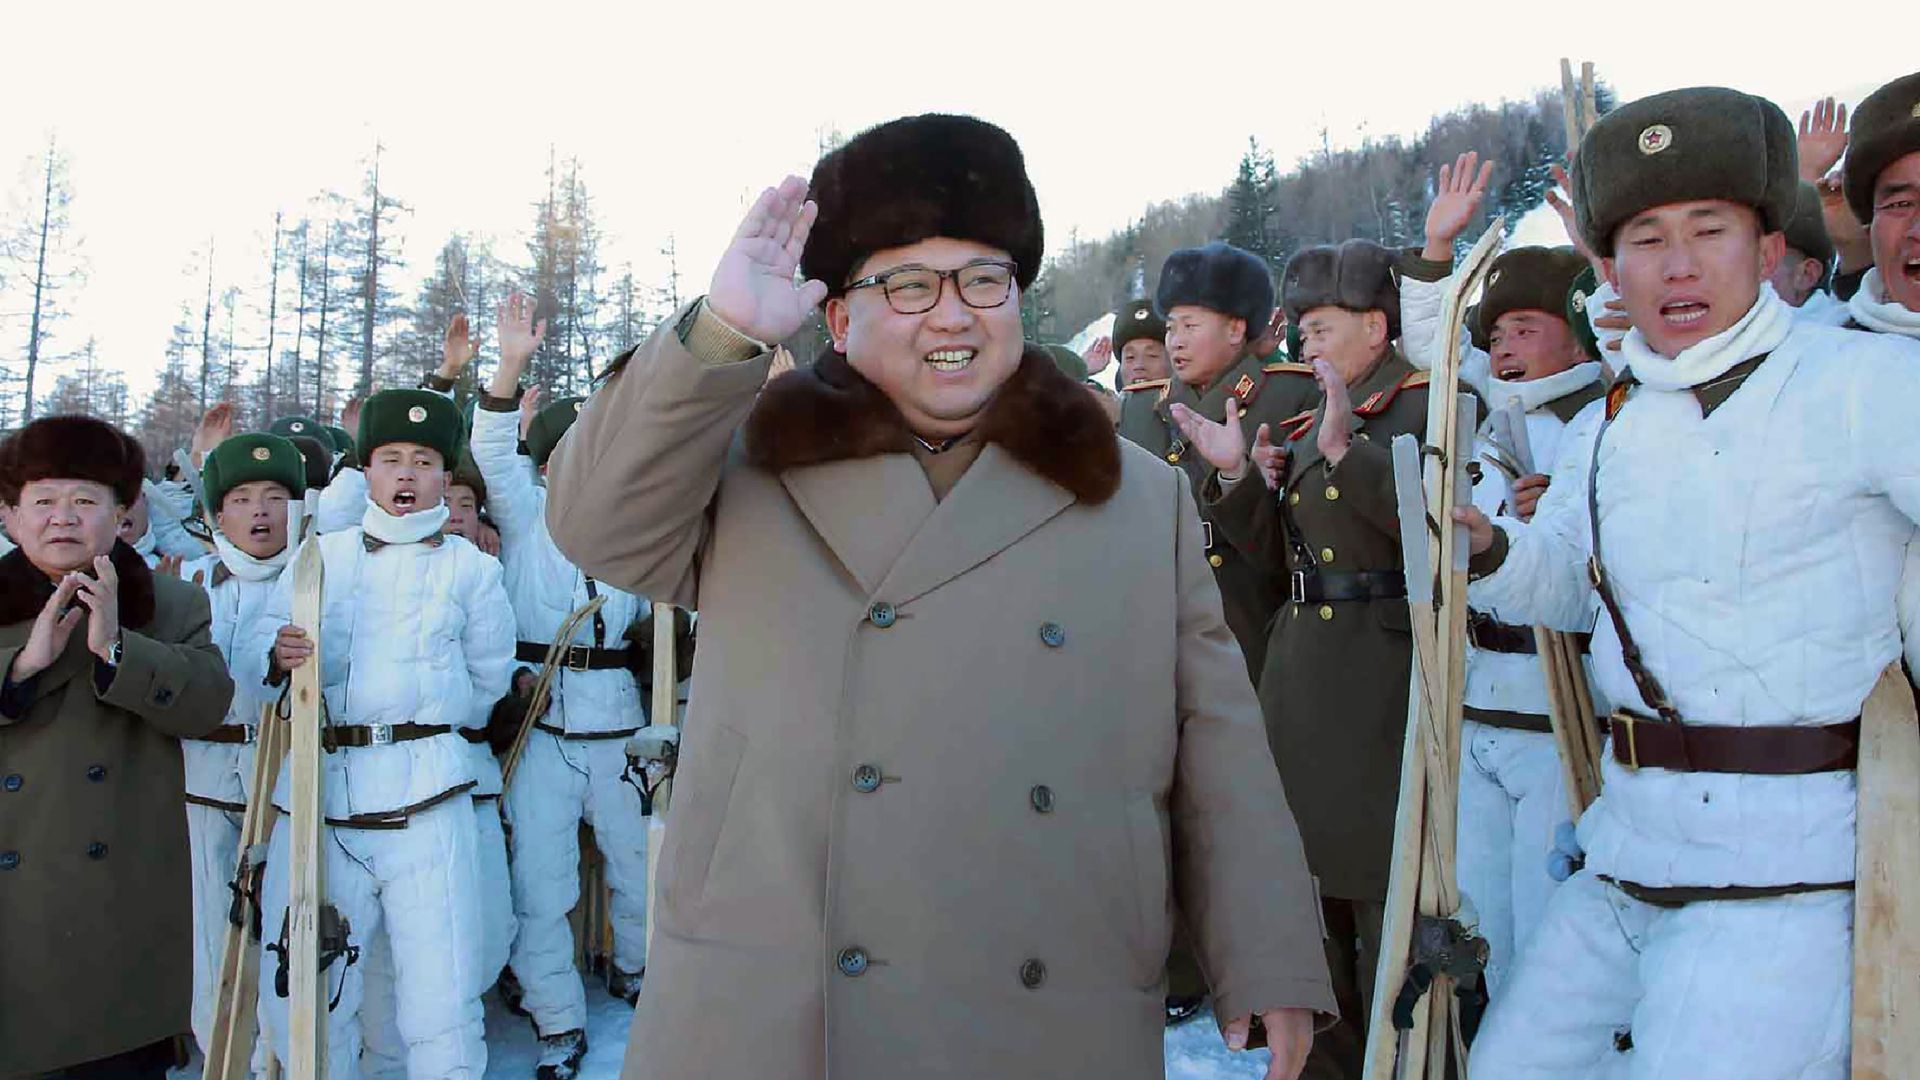 North Korean leader Kim Jong-Un (C) inspecting the skiing training of the mountain infantry battalion under KPA Unit 1045 at an undisclosed location. November 26, 2016. KNS/AFP/Getty Images